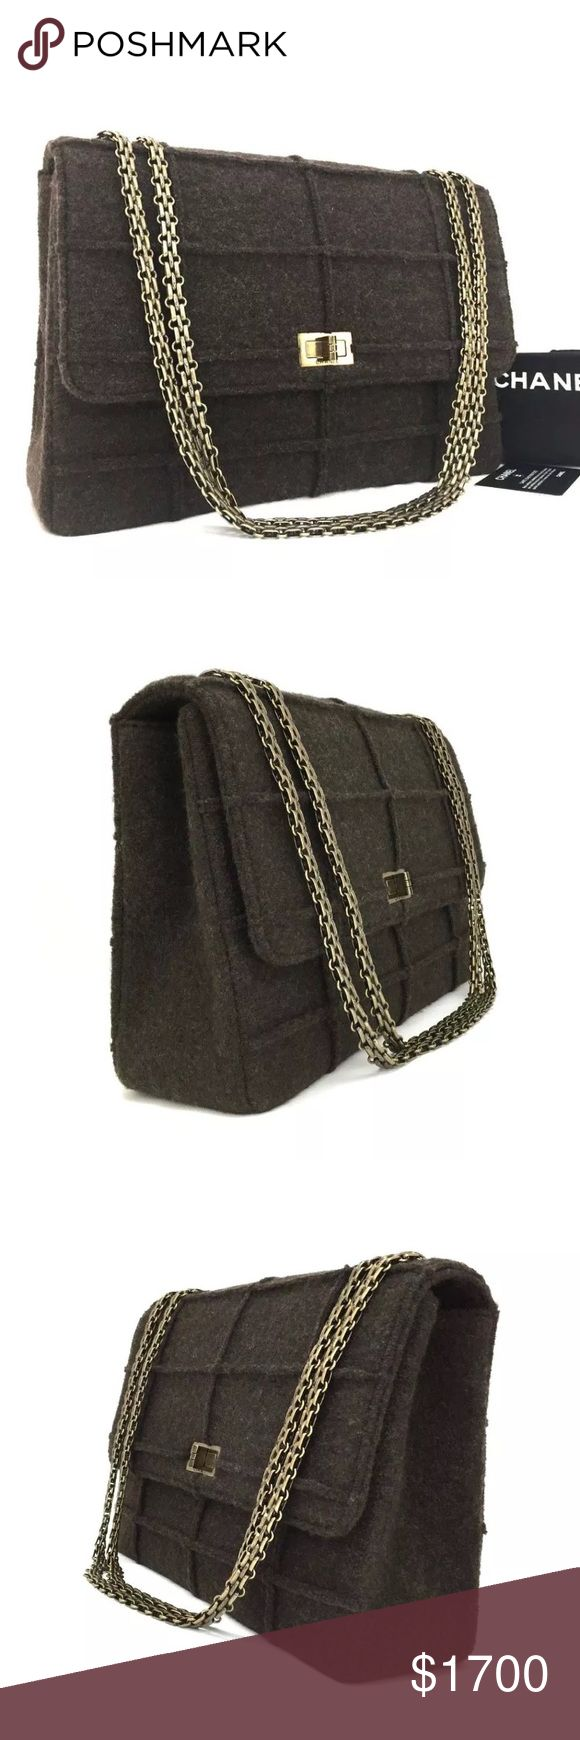 Chanel Jumbo 2.55 Reissue Wool Chain Bag Authentic. Like new condition. Comes with dust bag and authenticity card. CHANEL Bags Shoulder Bags